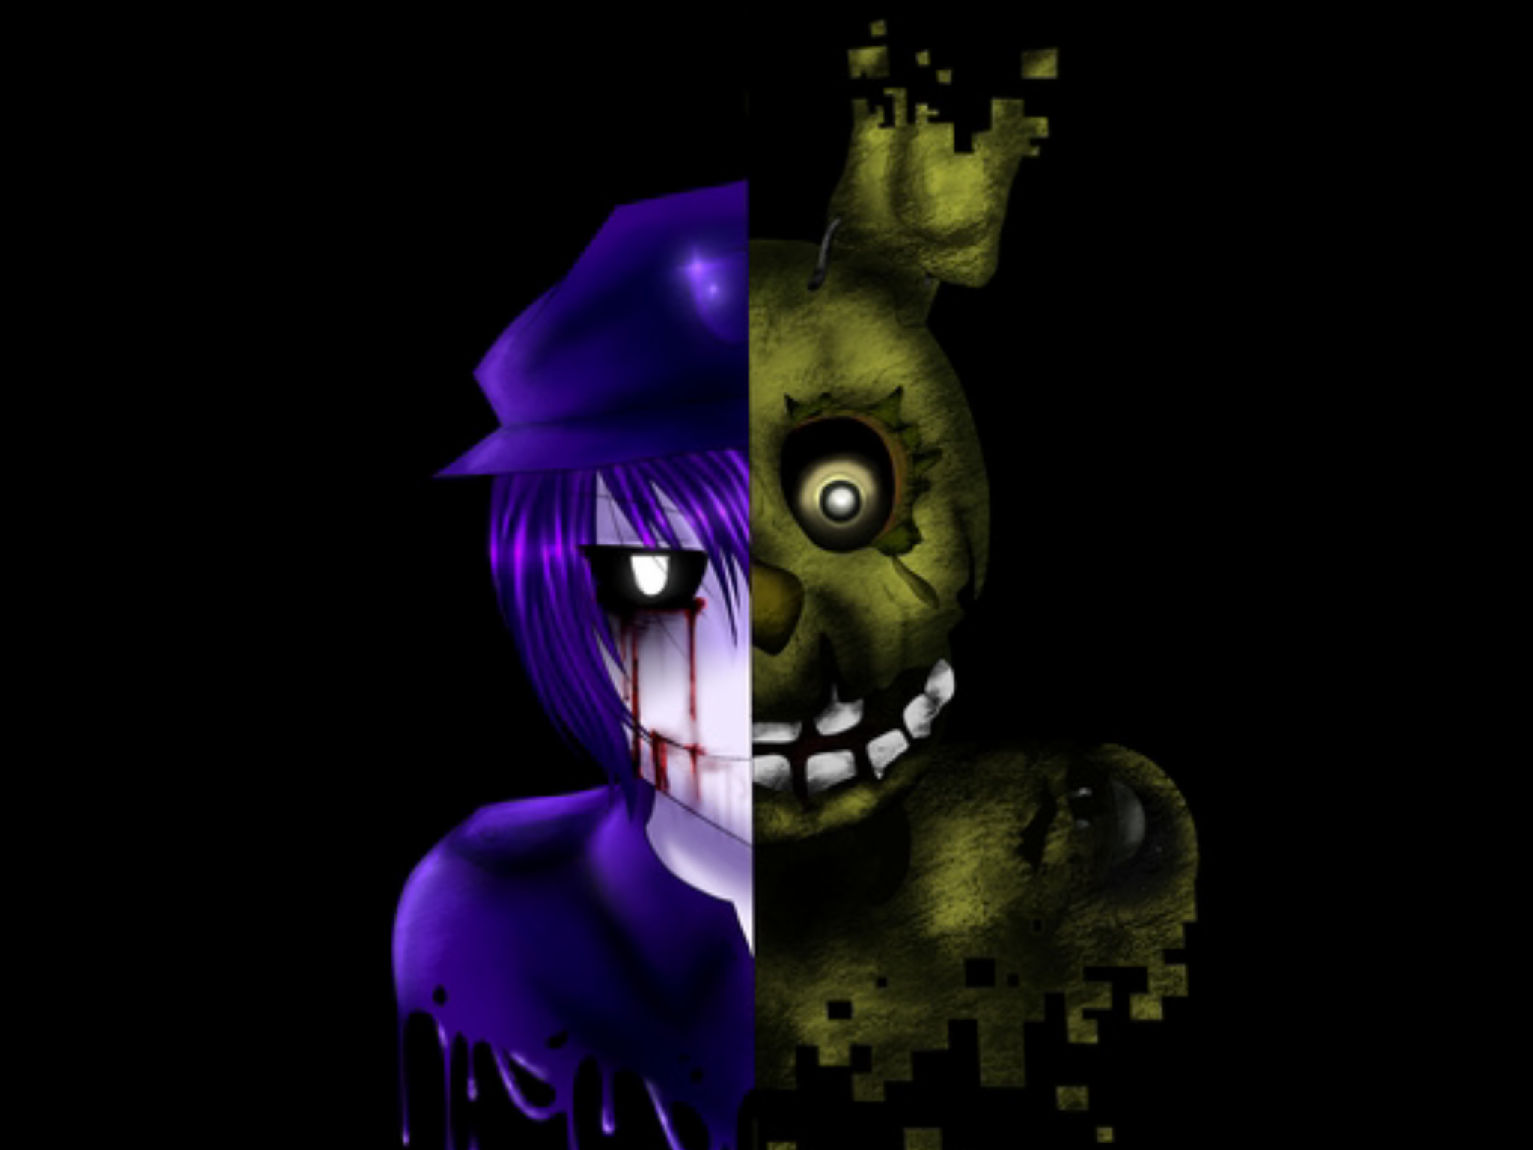 What was springtrap original name?